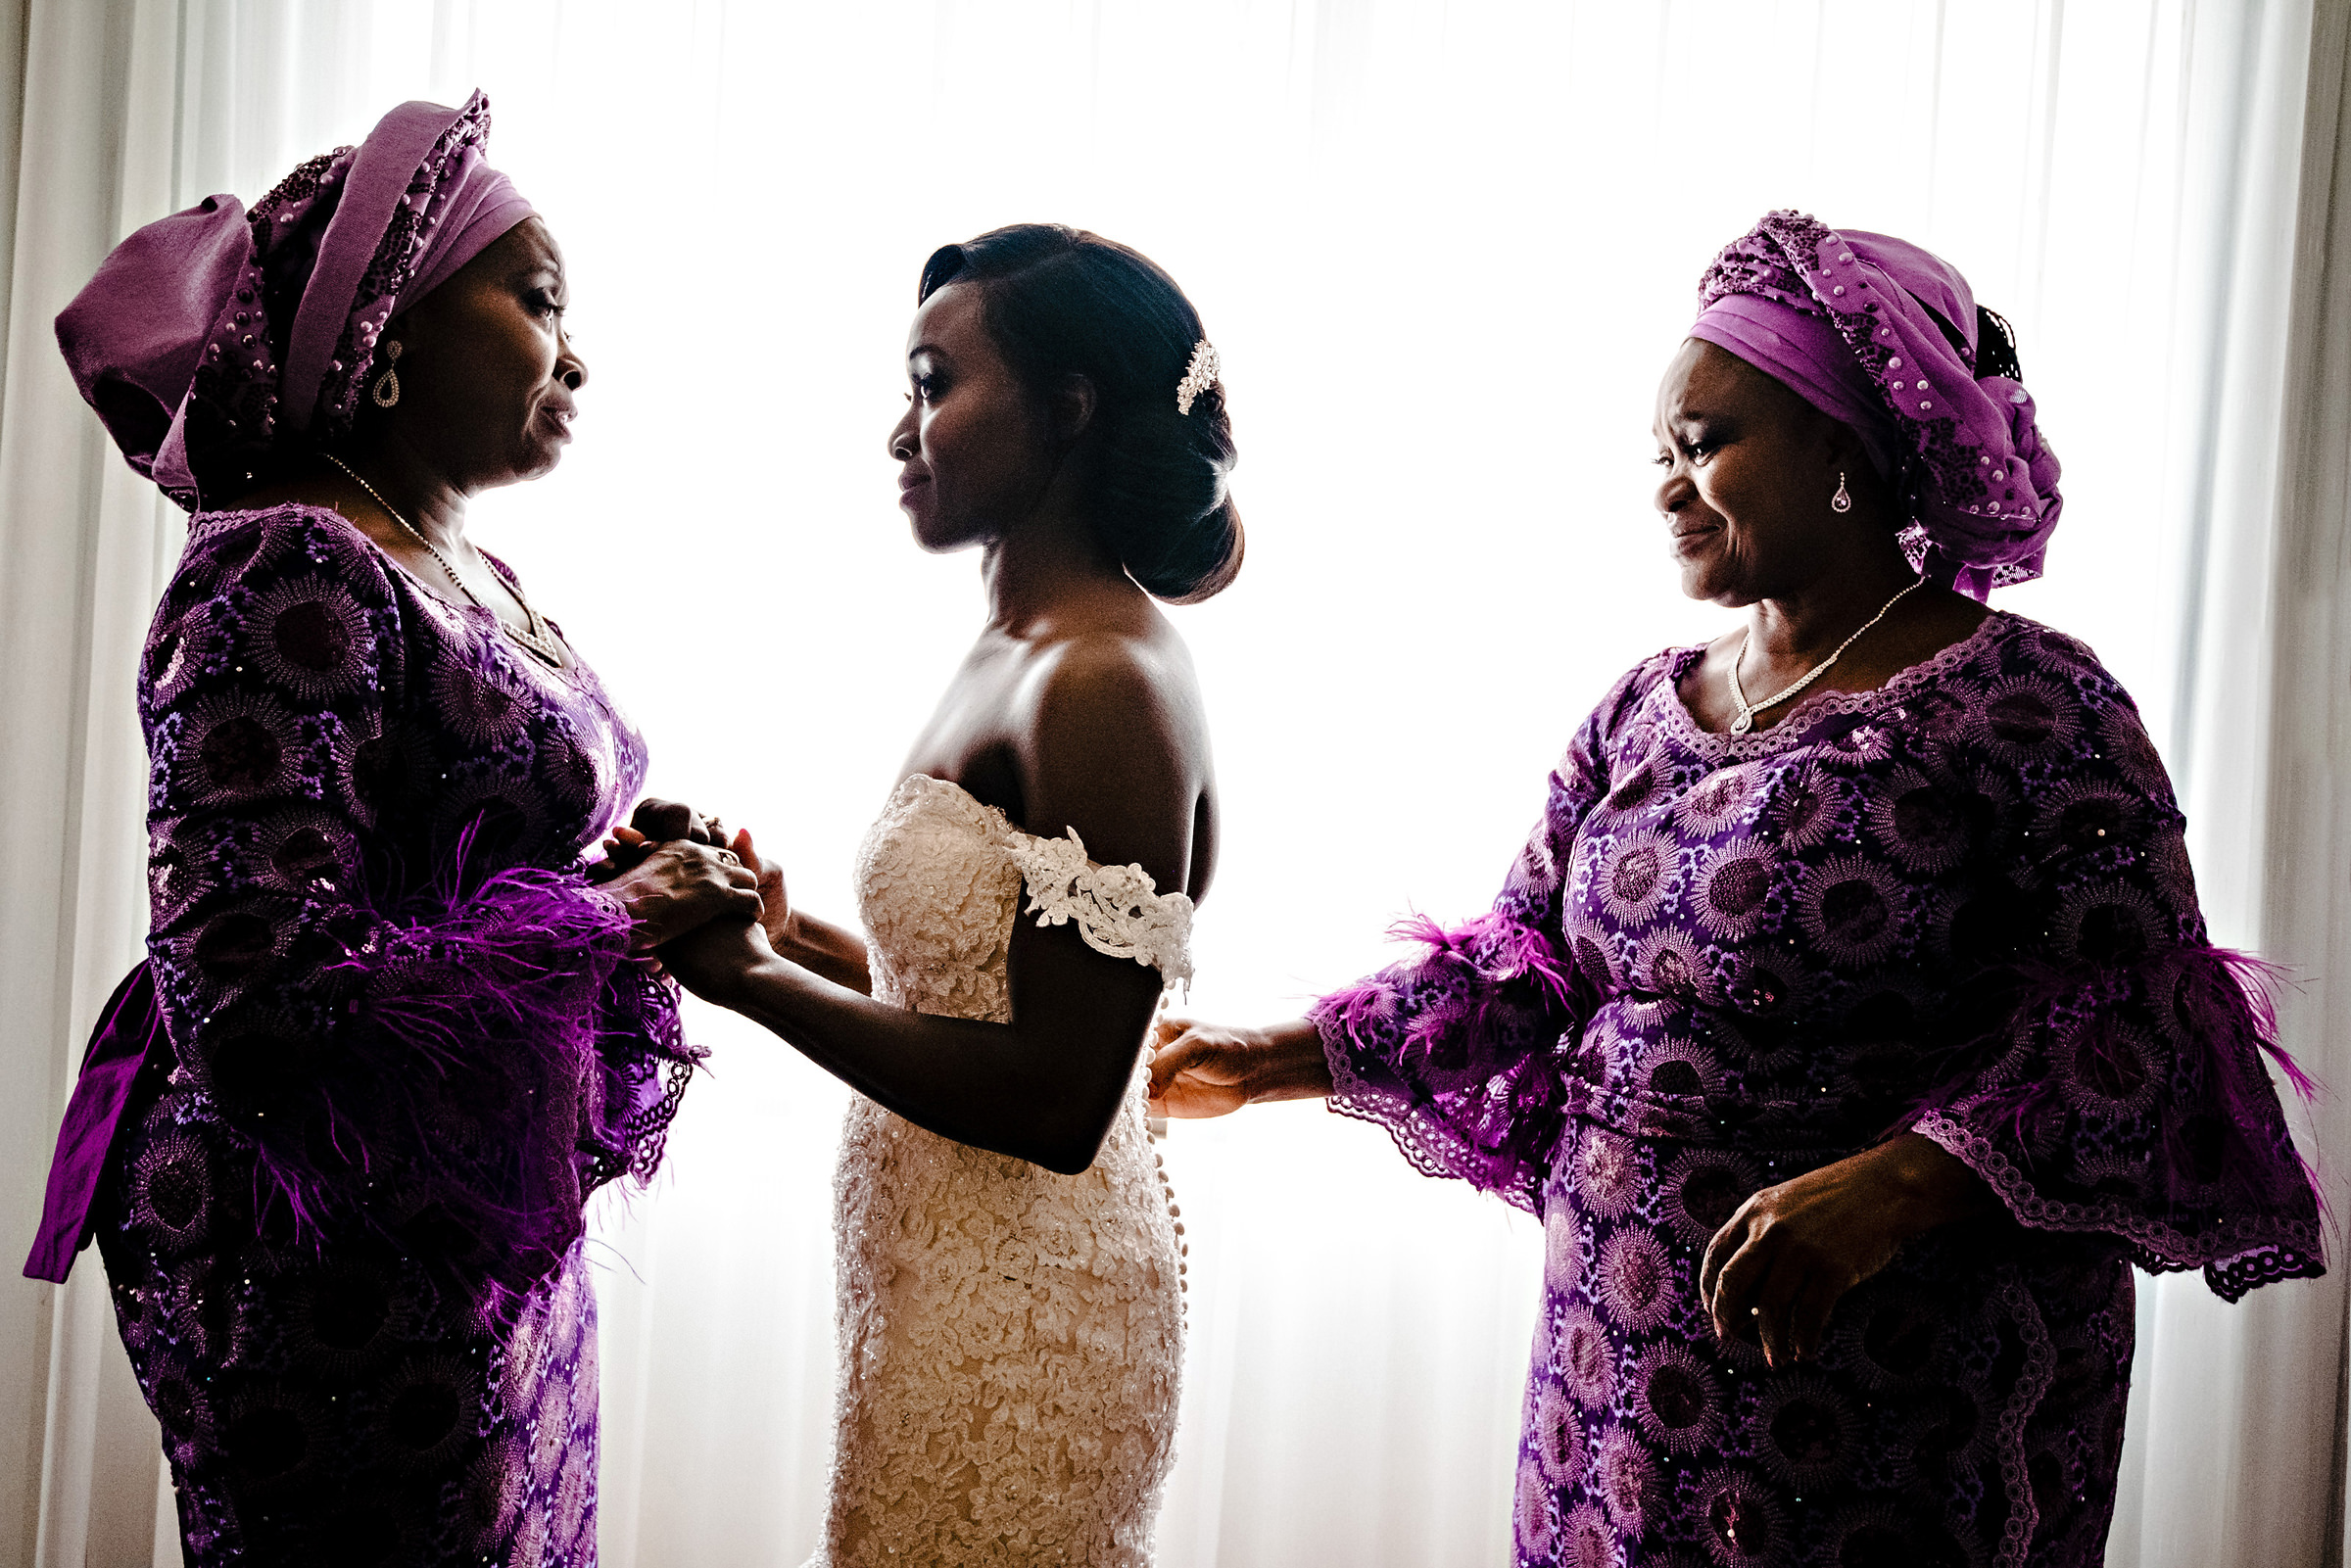 Bride between two female family members - photo by Moore Photography